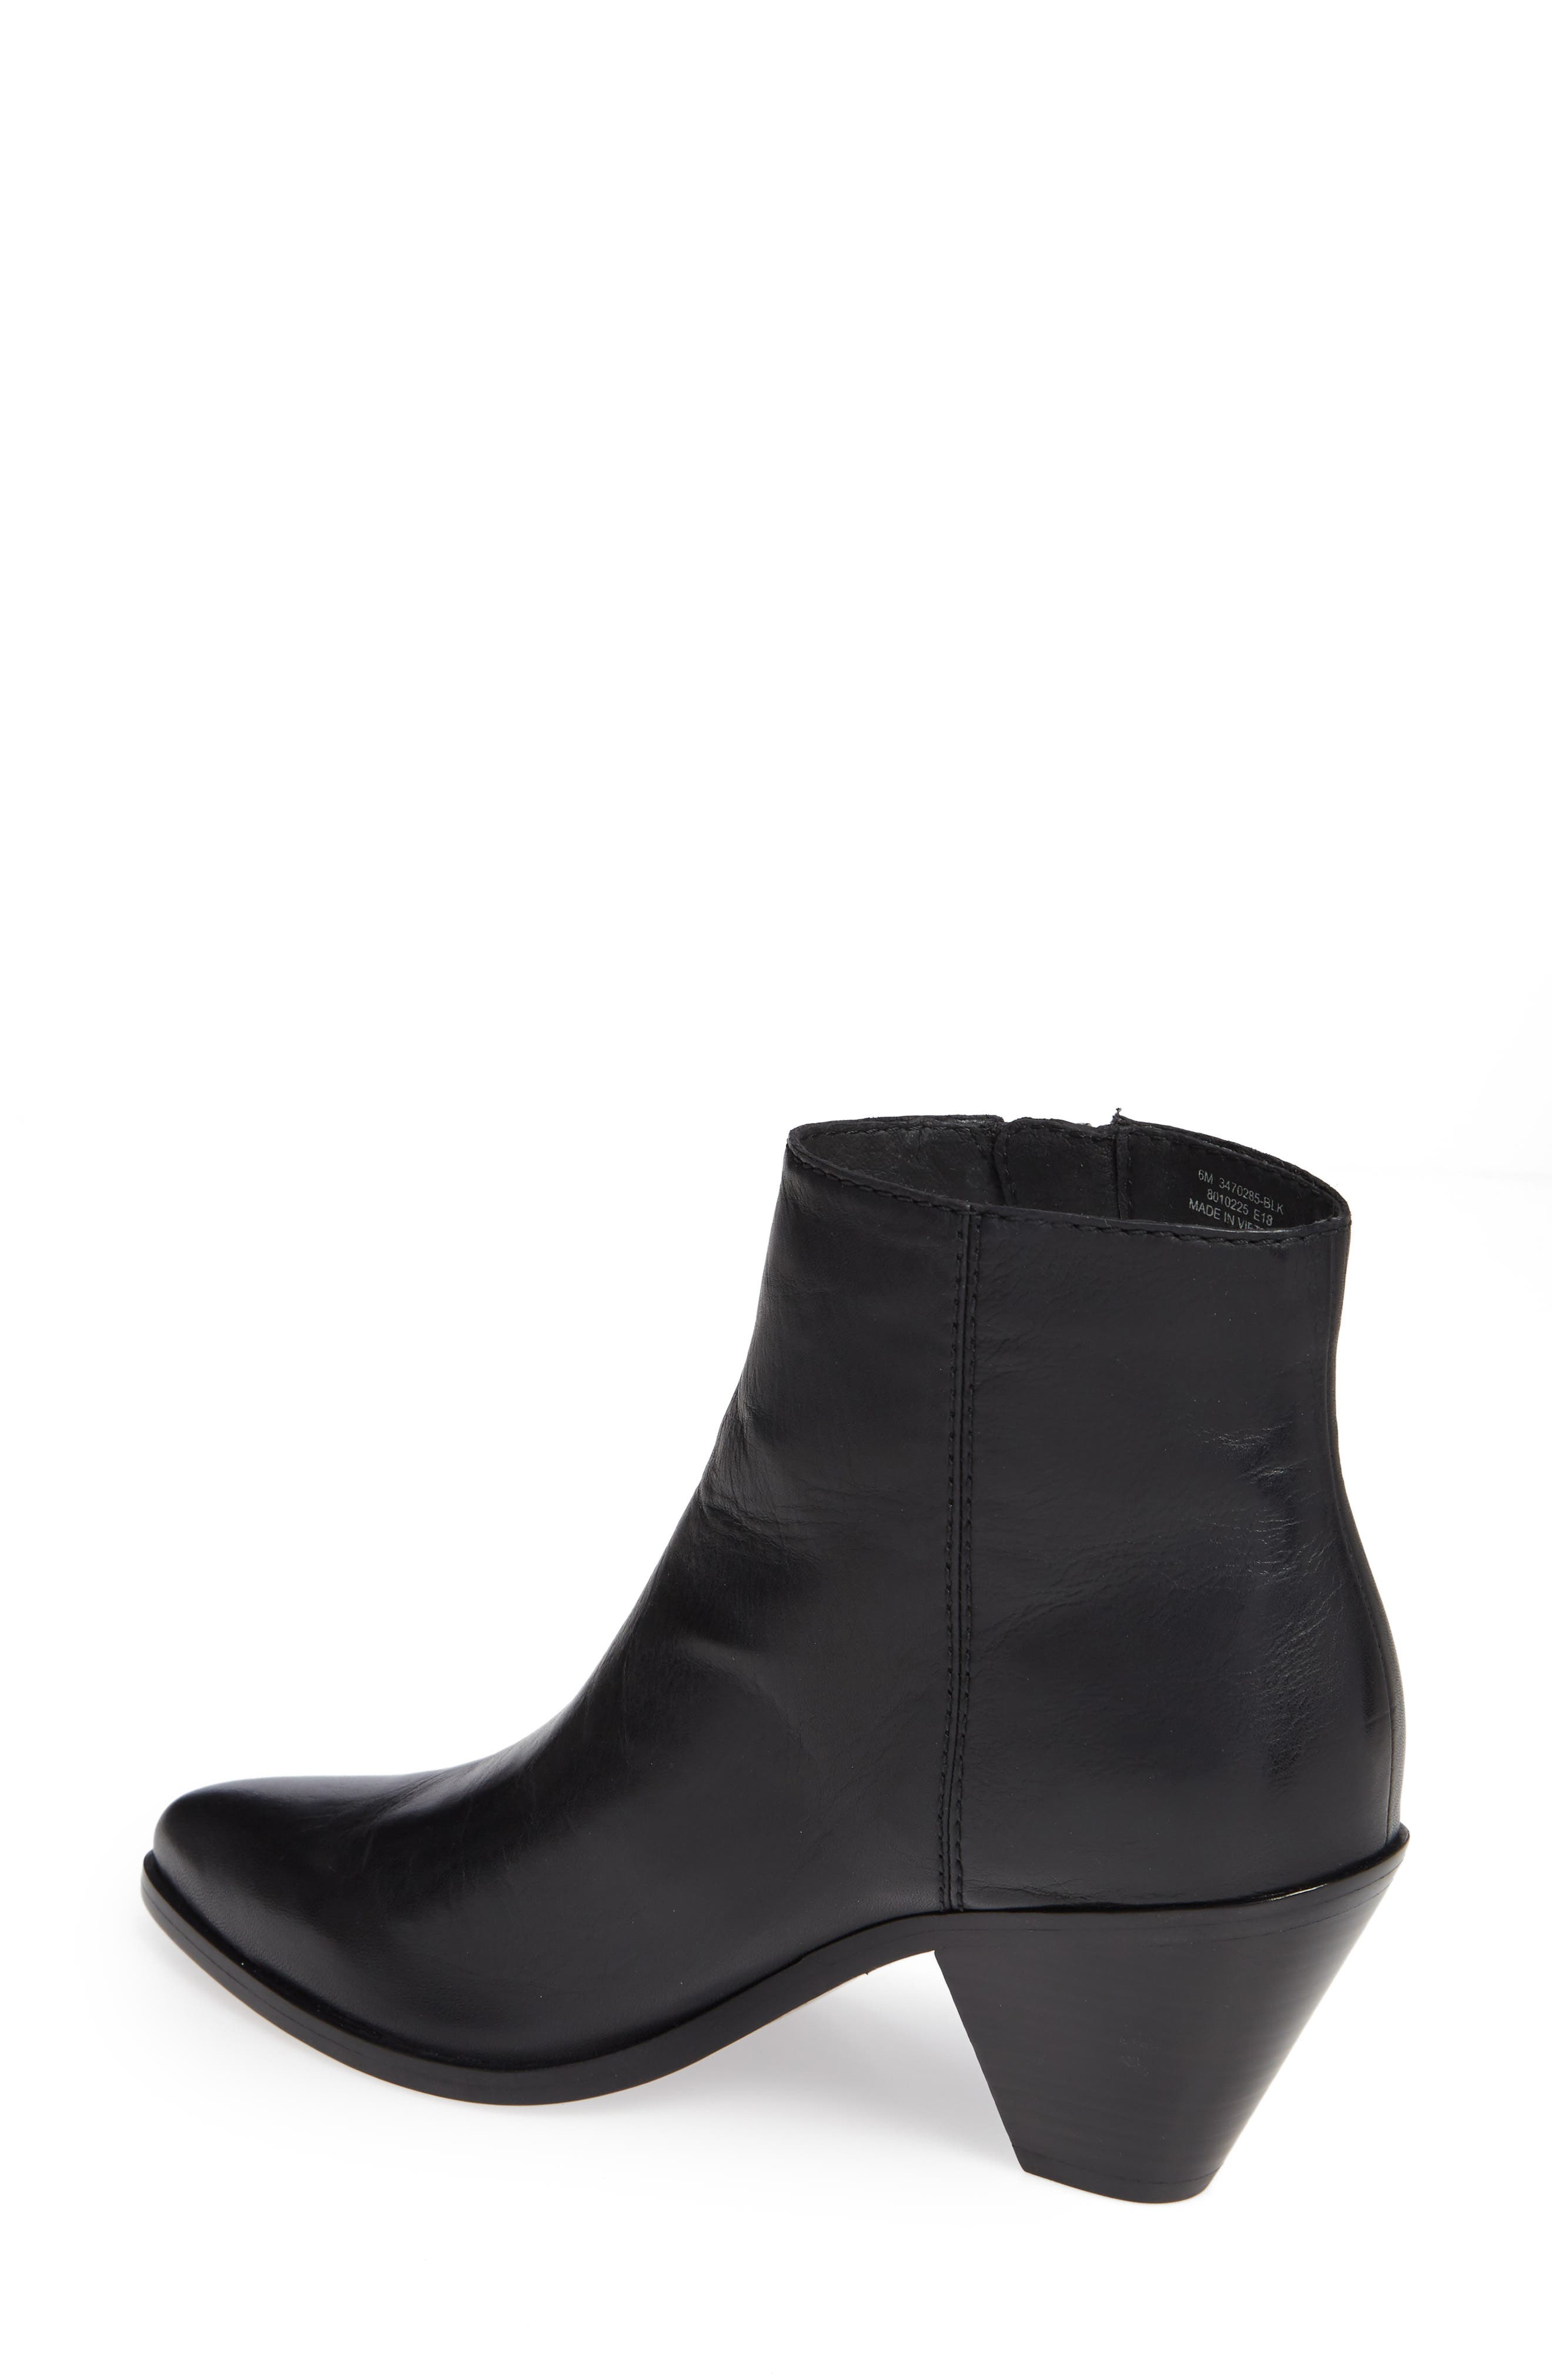 Lila Pointy Toe Bootie,                             Alternate thumbnail 2, color,                             001